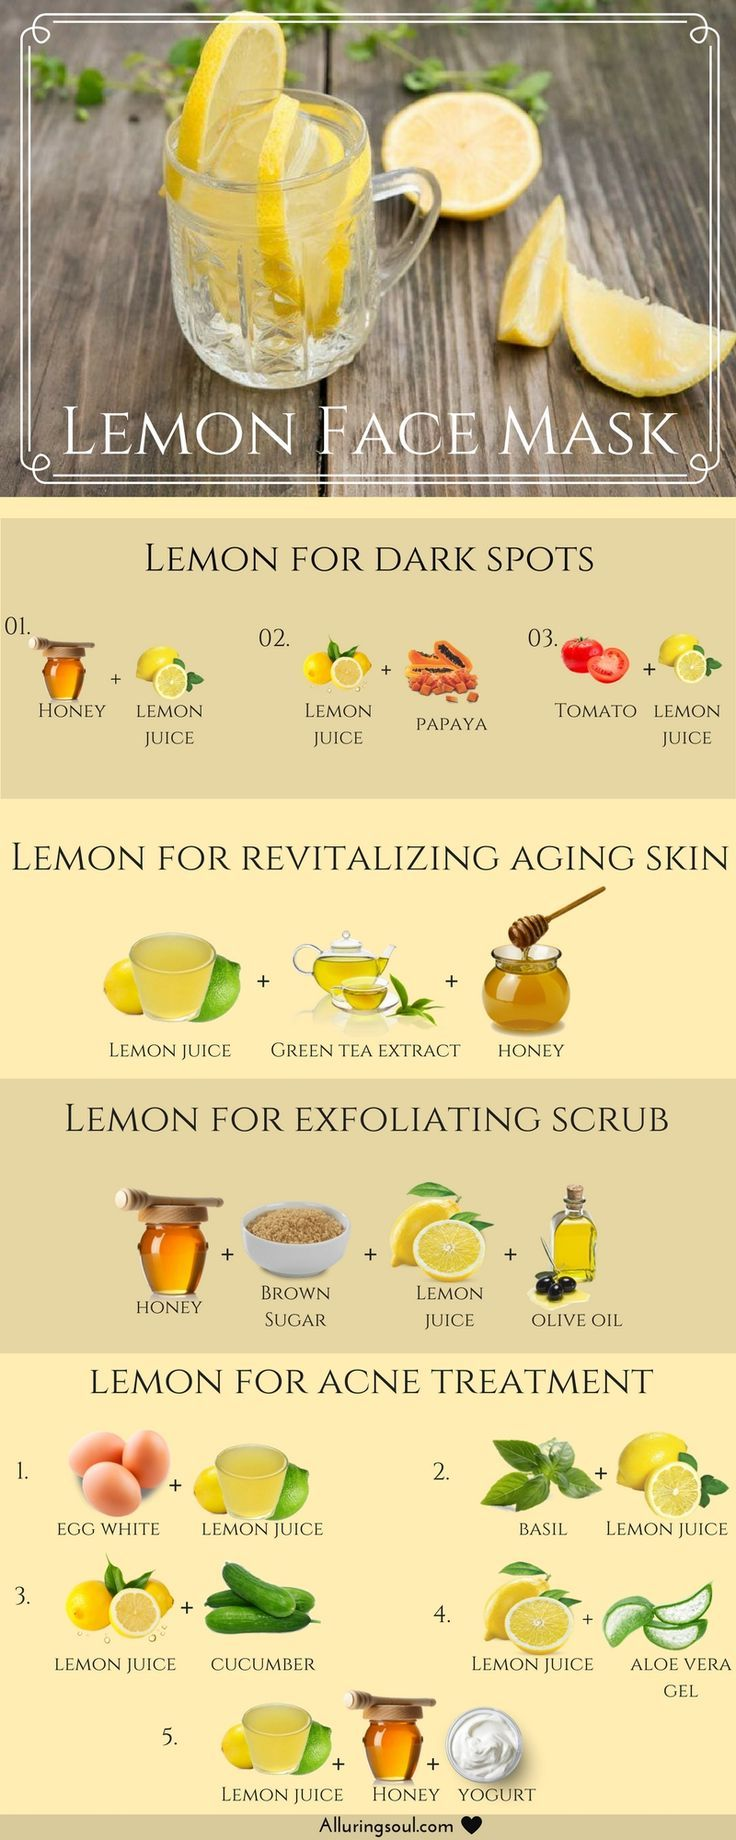 Lemons are rich in vitamin C and the flavonoids are said to contain antioxidants, which is why lemon face mask is useful for many skin problems. #naturalskincare #skincareproducts #Australianskincare #AqiskinCare #australianmade